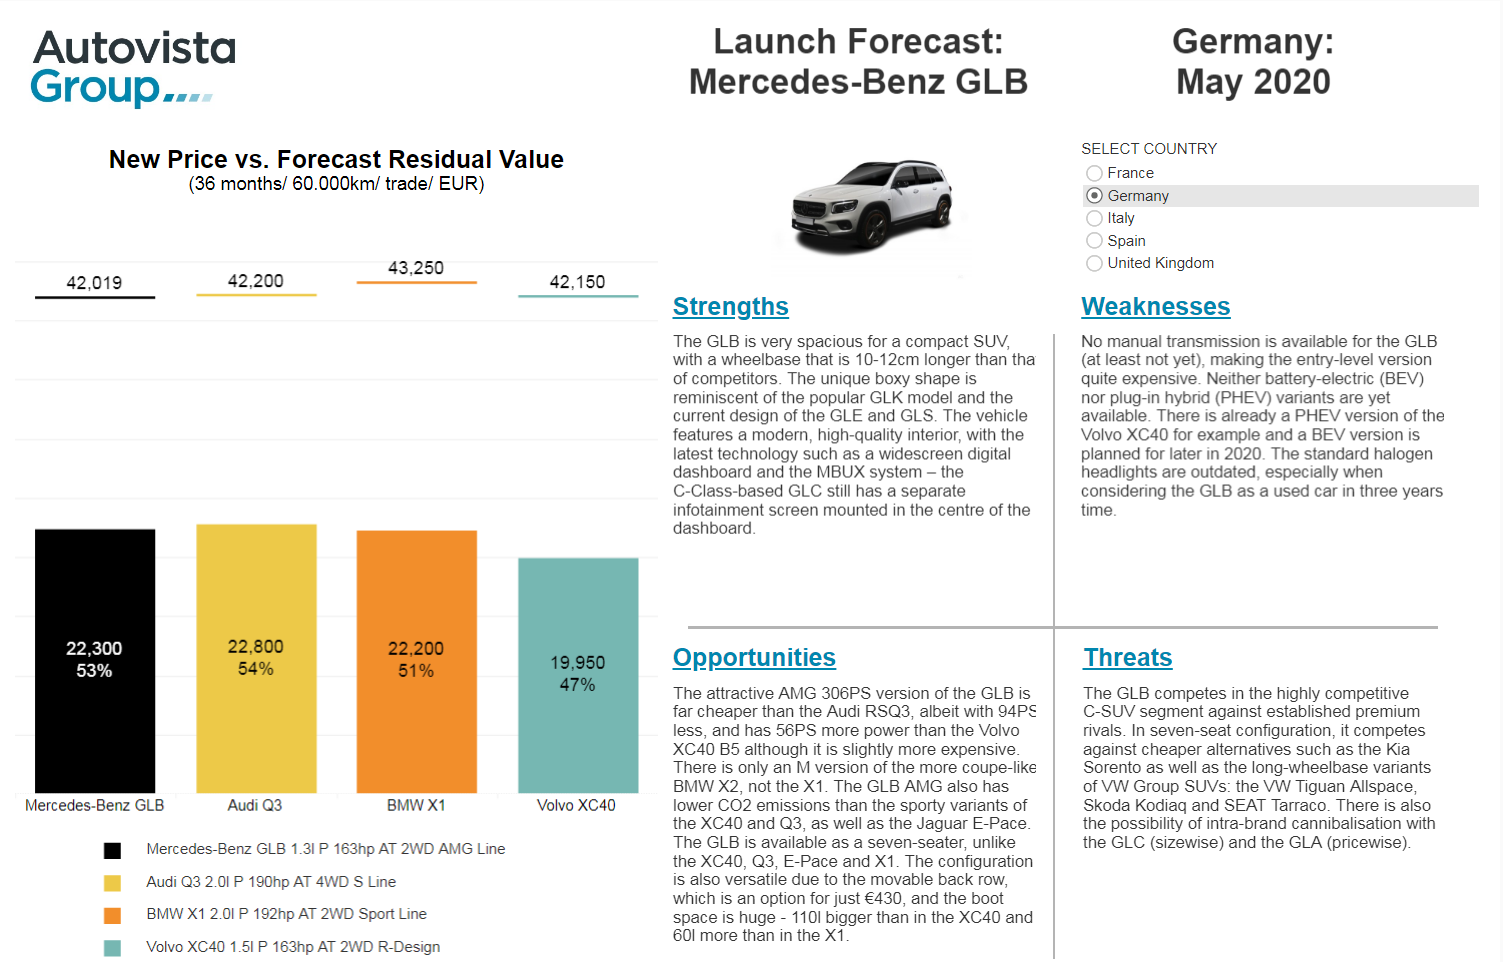 Launch forecast Mercedes-Benz GLB